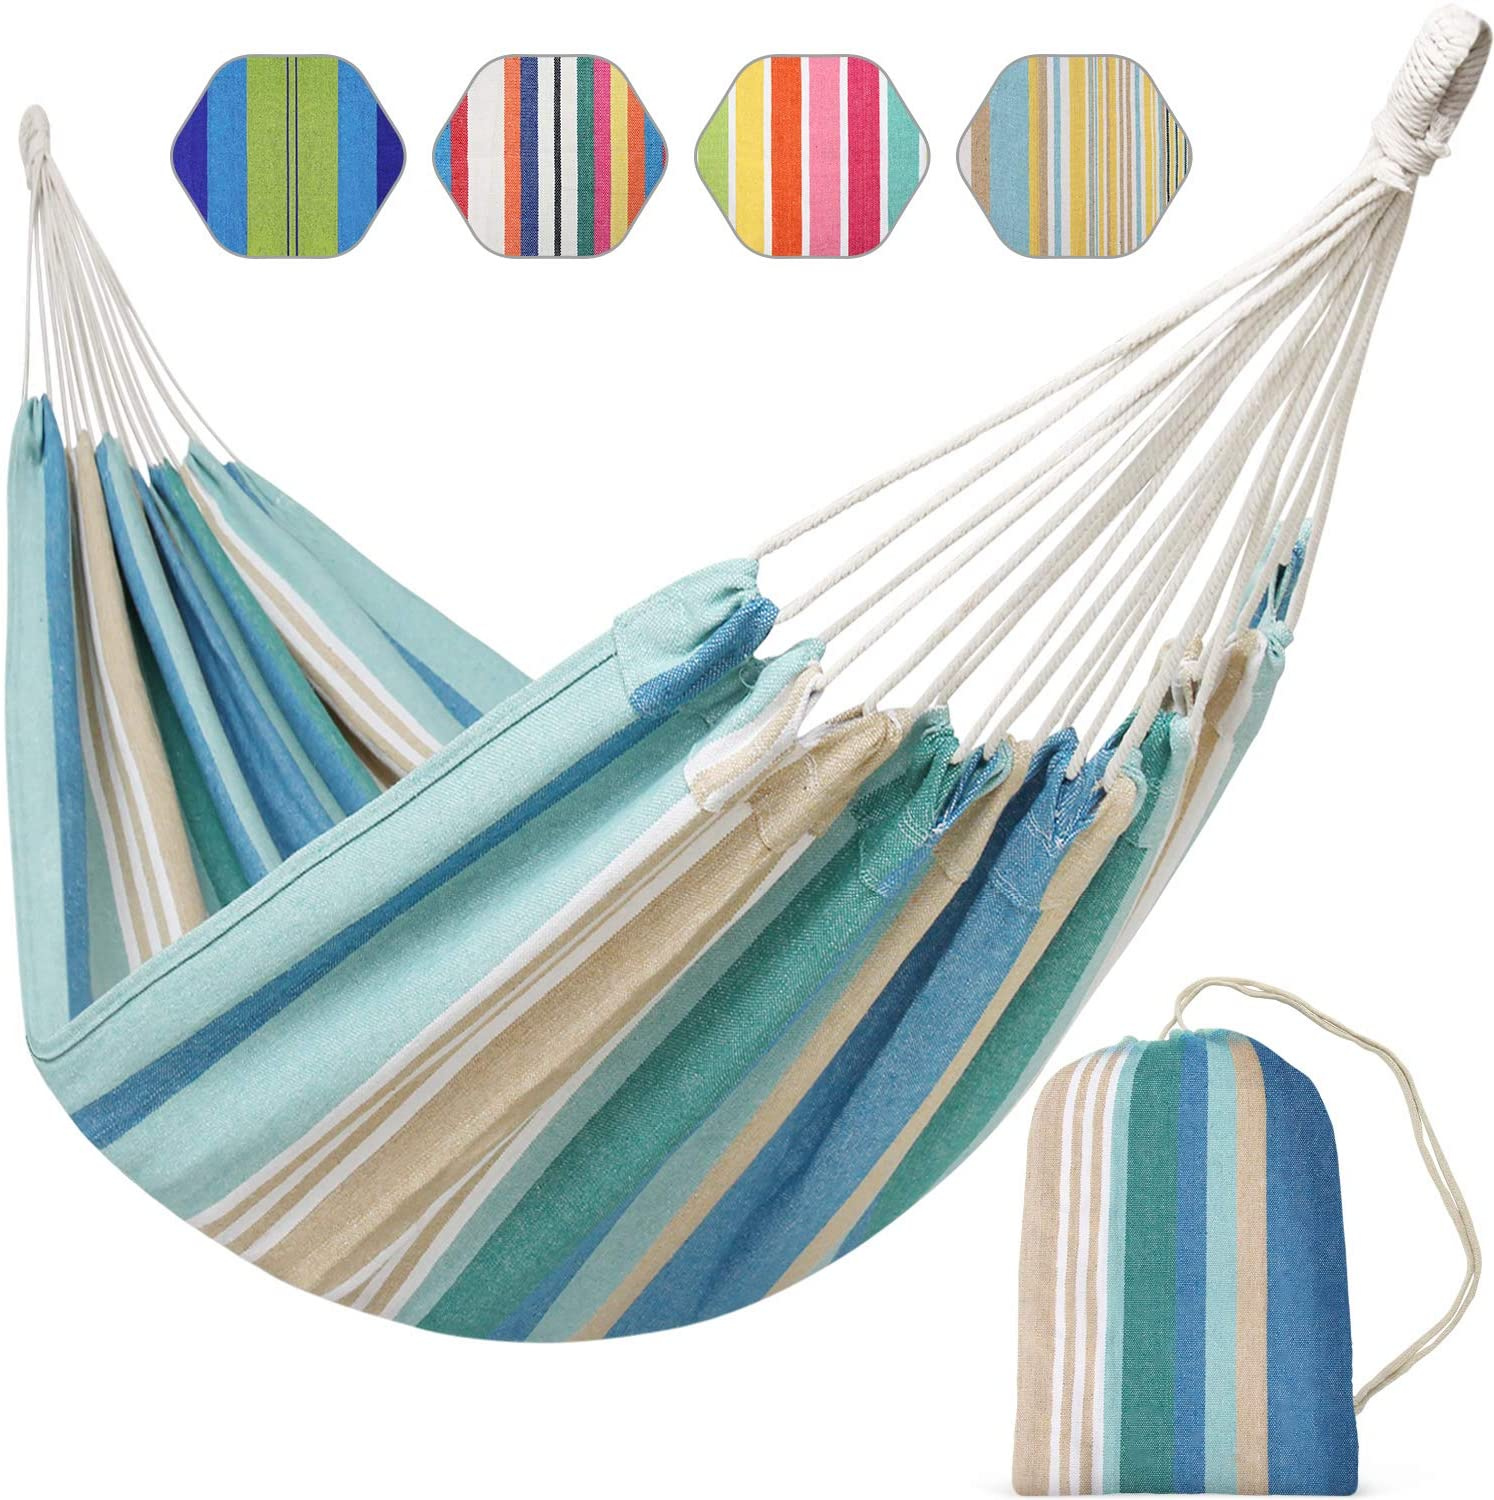 INNO STAGE Brazilian Hammock Canvas Hammock Portable Blue Hammock with Carry Bag for Backyard, Porch, Outdoor and Indoor Use (Blue & Green Stripes): Furniture & Decor